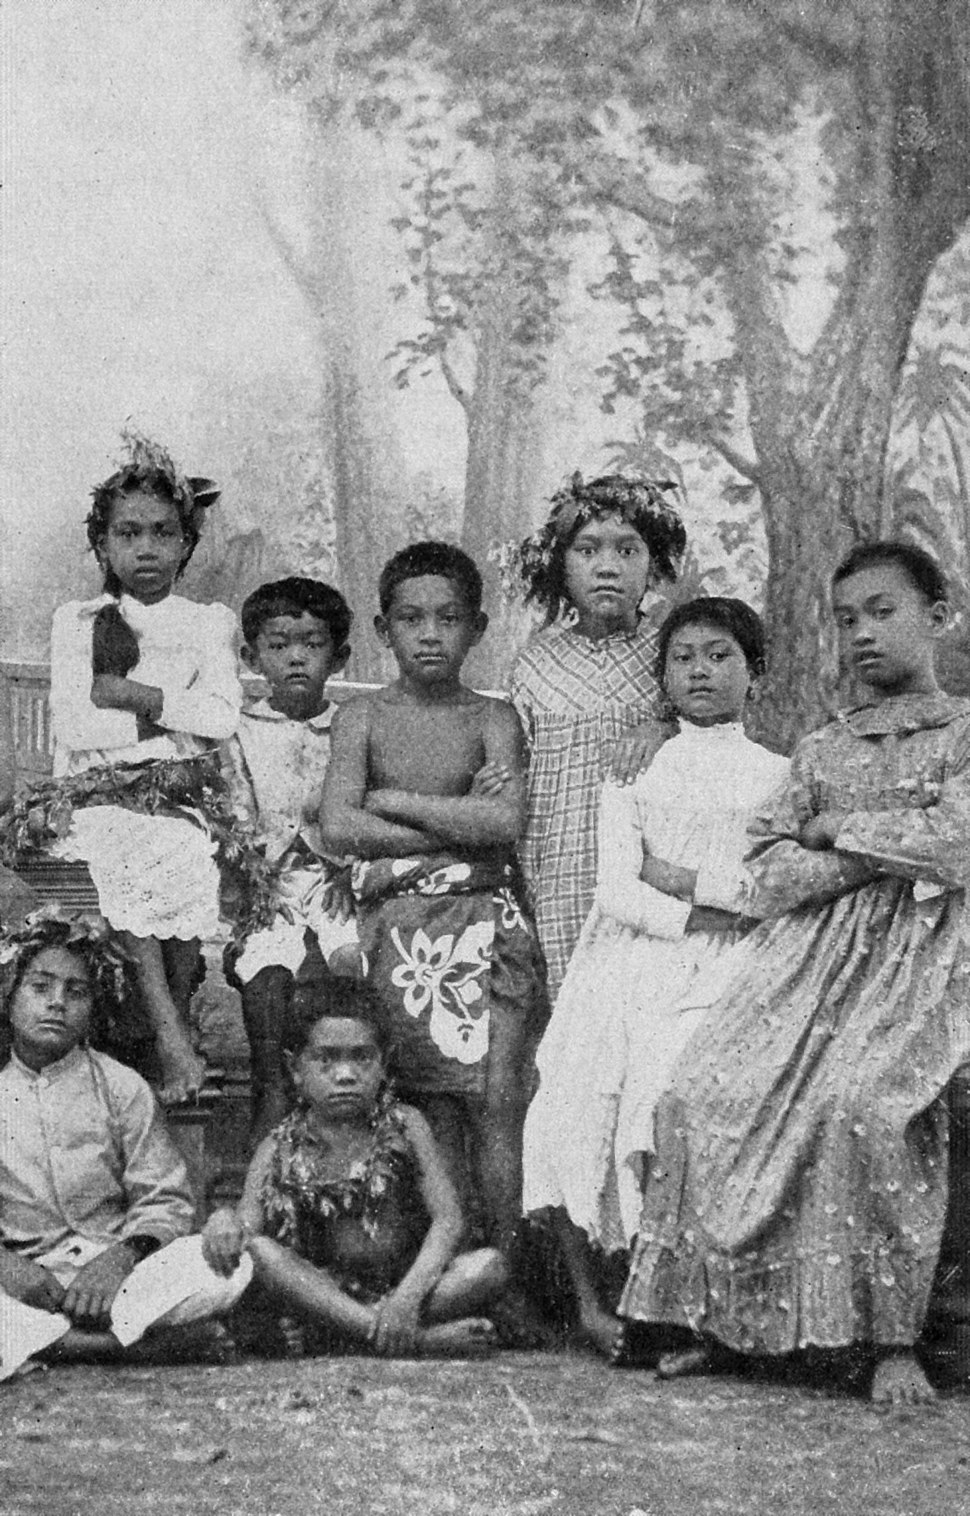 Tahitian schoolchildren, by Coulon